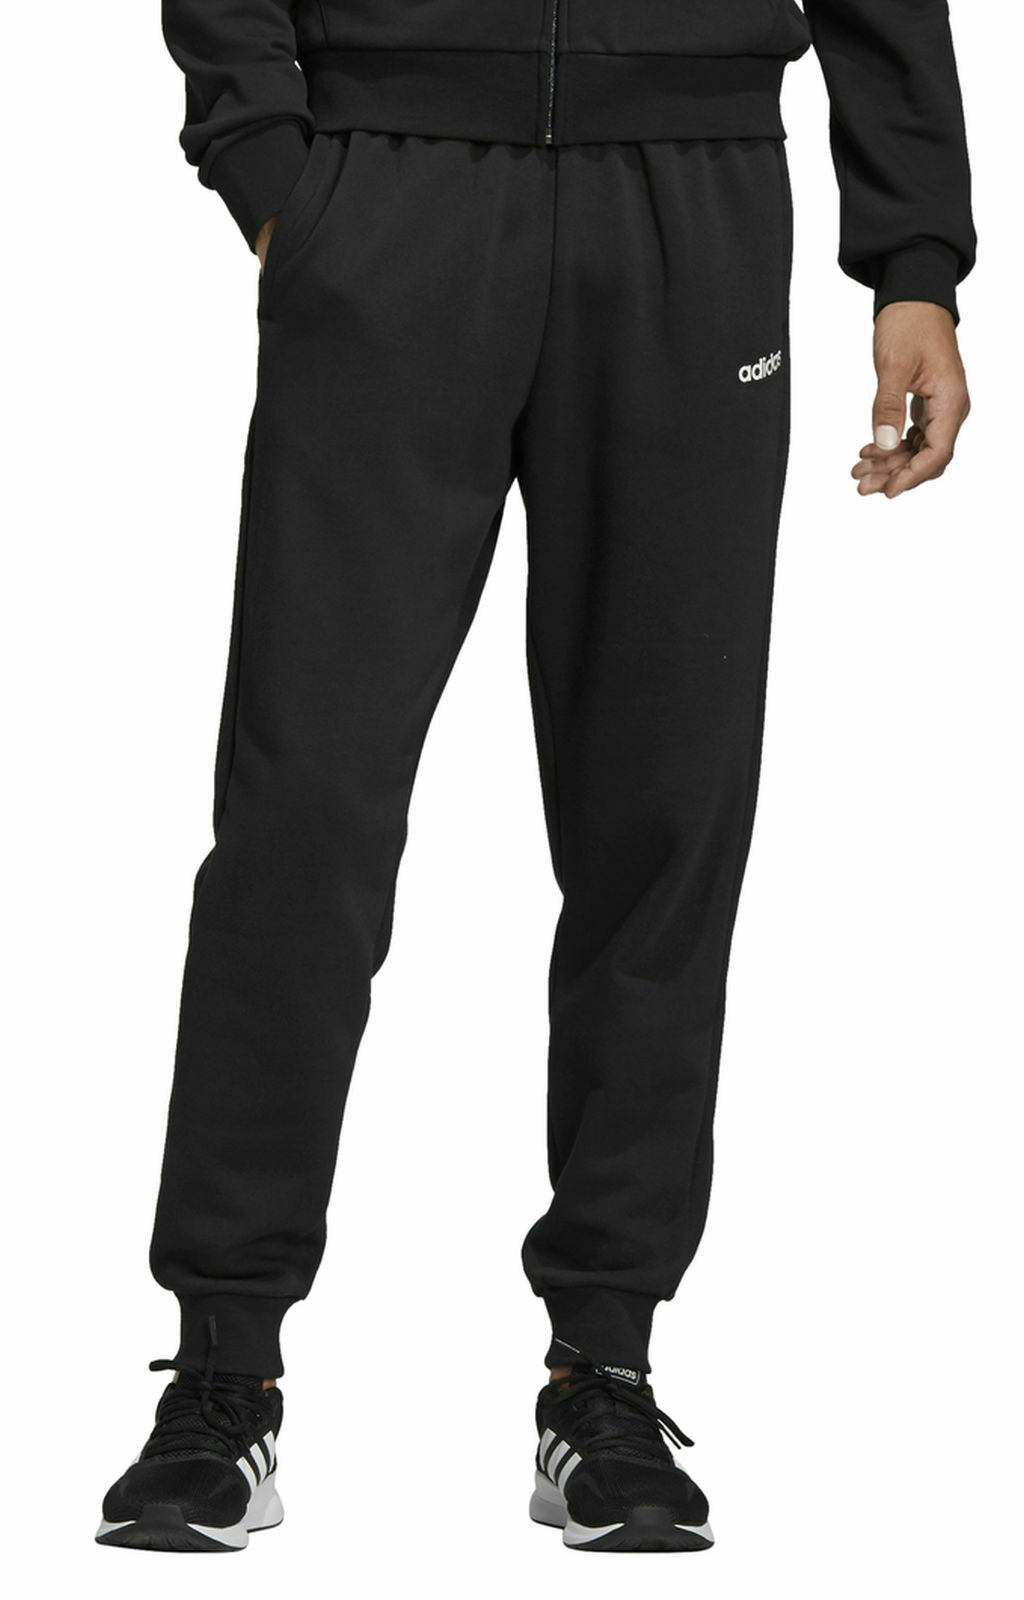 Adidas  core training pants for men essentials simple, pure  more affordable